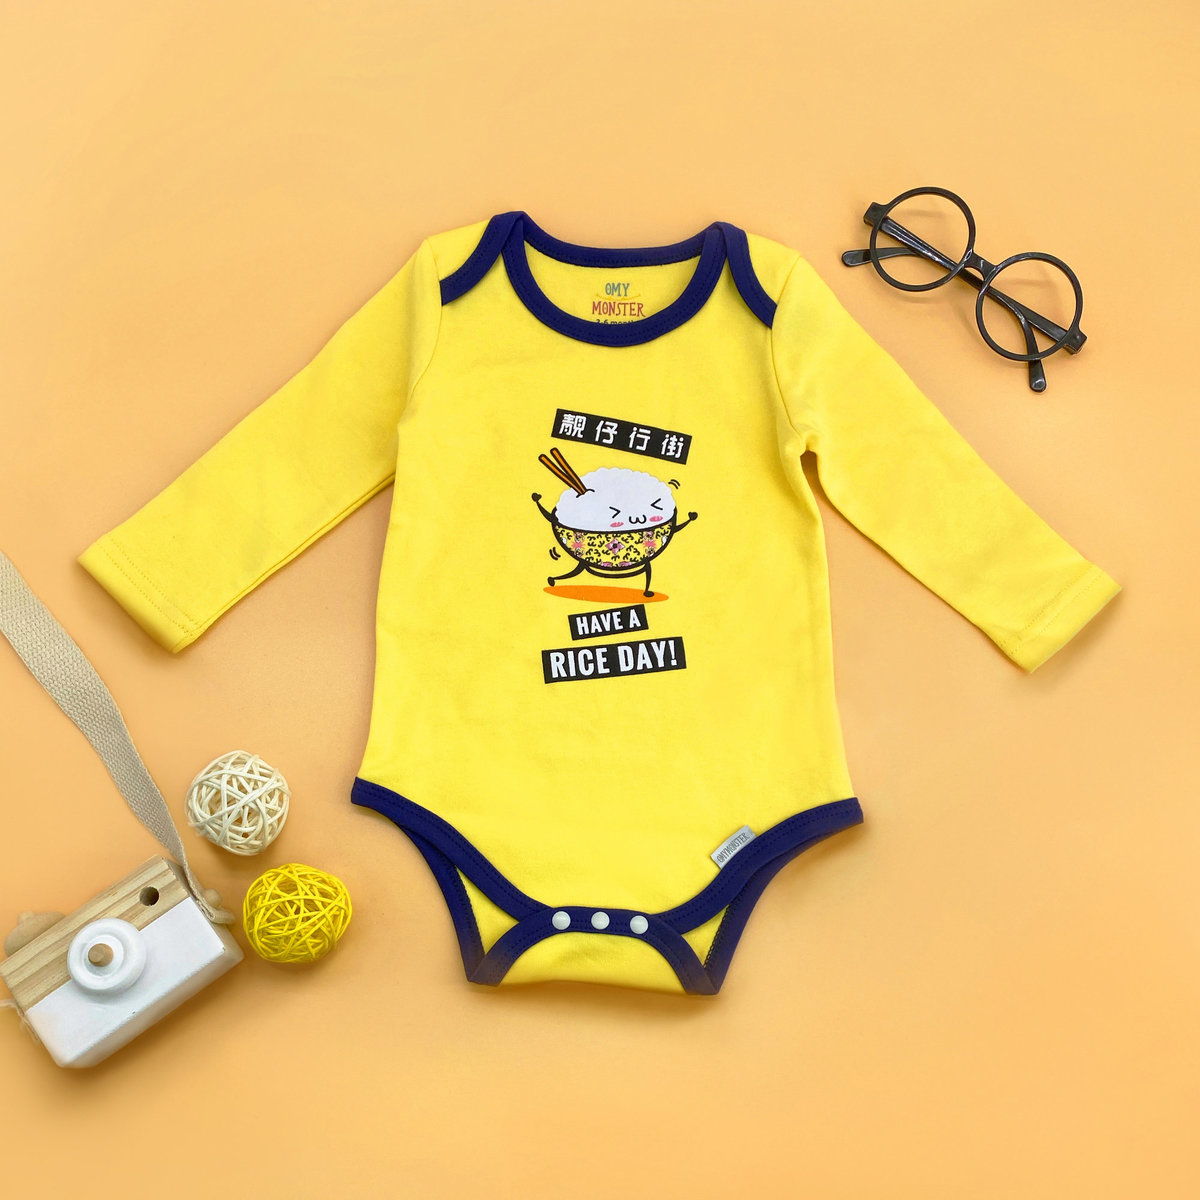 OMYMONSTER - Have A Rice Day Long Sleeve Bodysuit 0-3 month